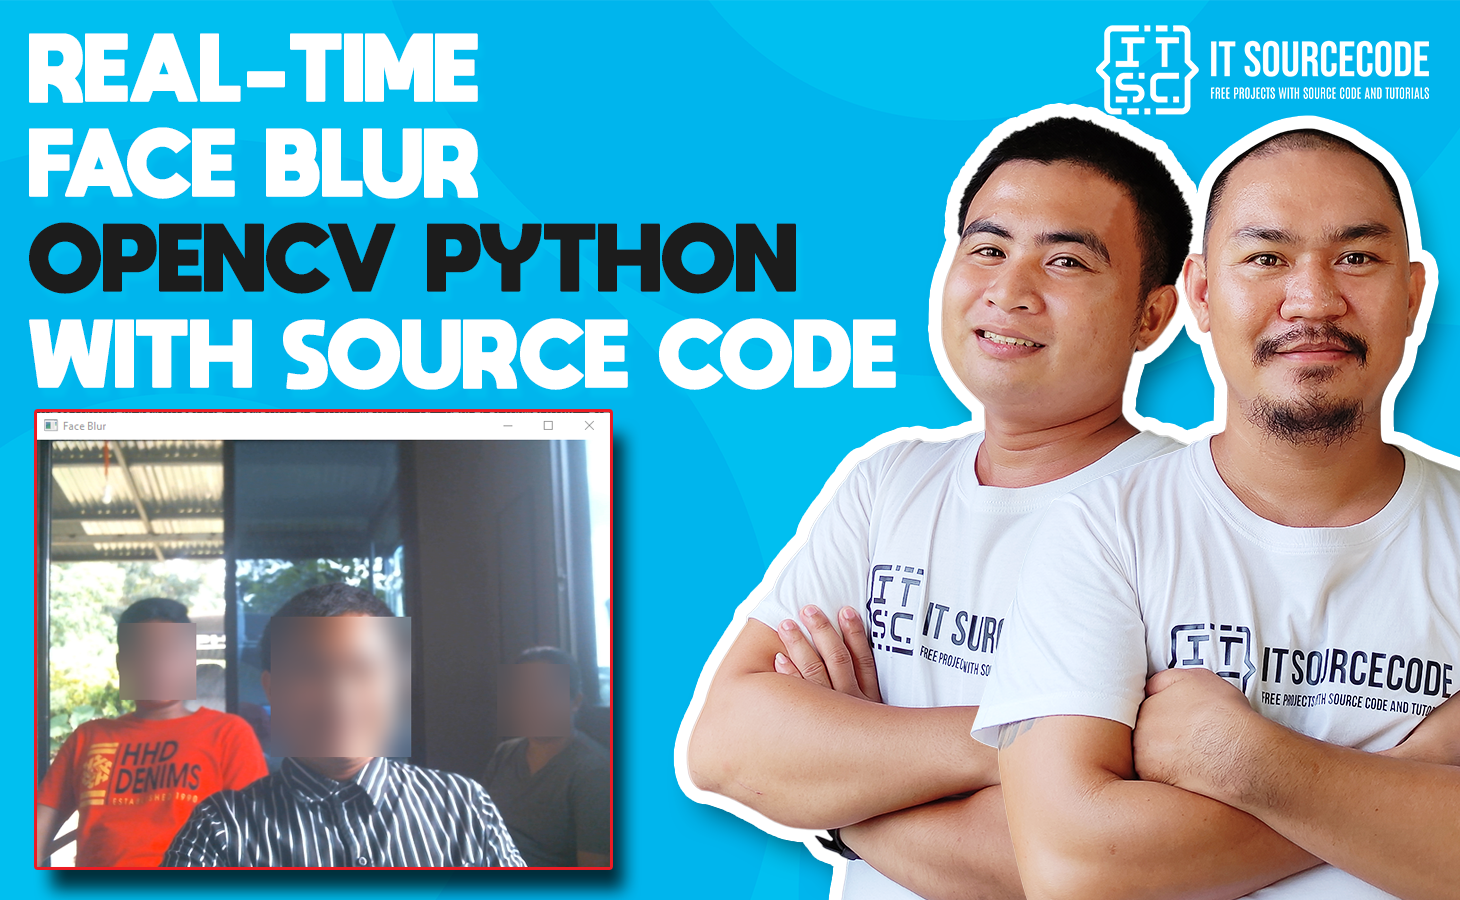 Real-Time Face Blur OpenCV Python With Source Code